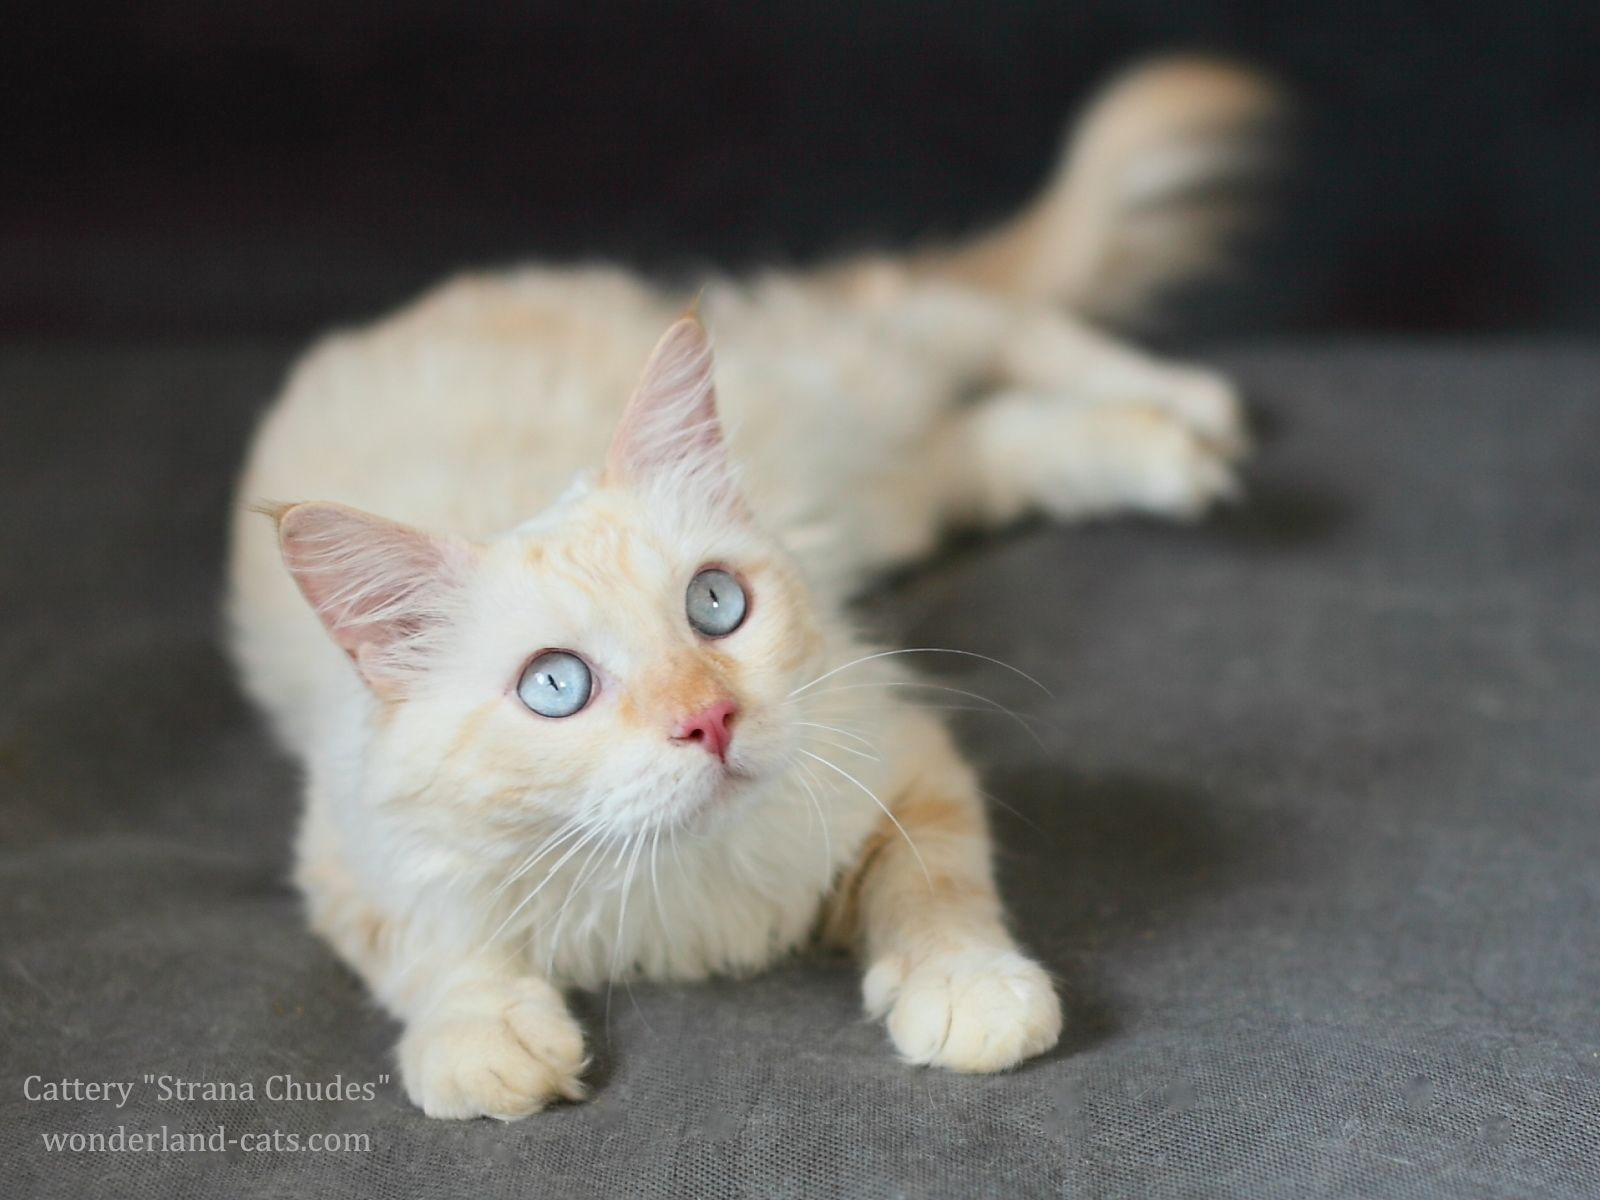 Neva Masquerade Beautiful Cat Color Cream Point Blue Eyes In The Cattery Strana Chudes You Can Choose Beautiful Pretty Cats Siberian Cats For Sale Cattery